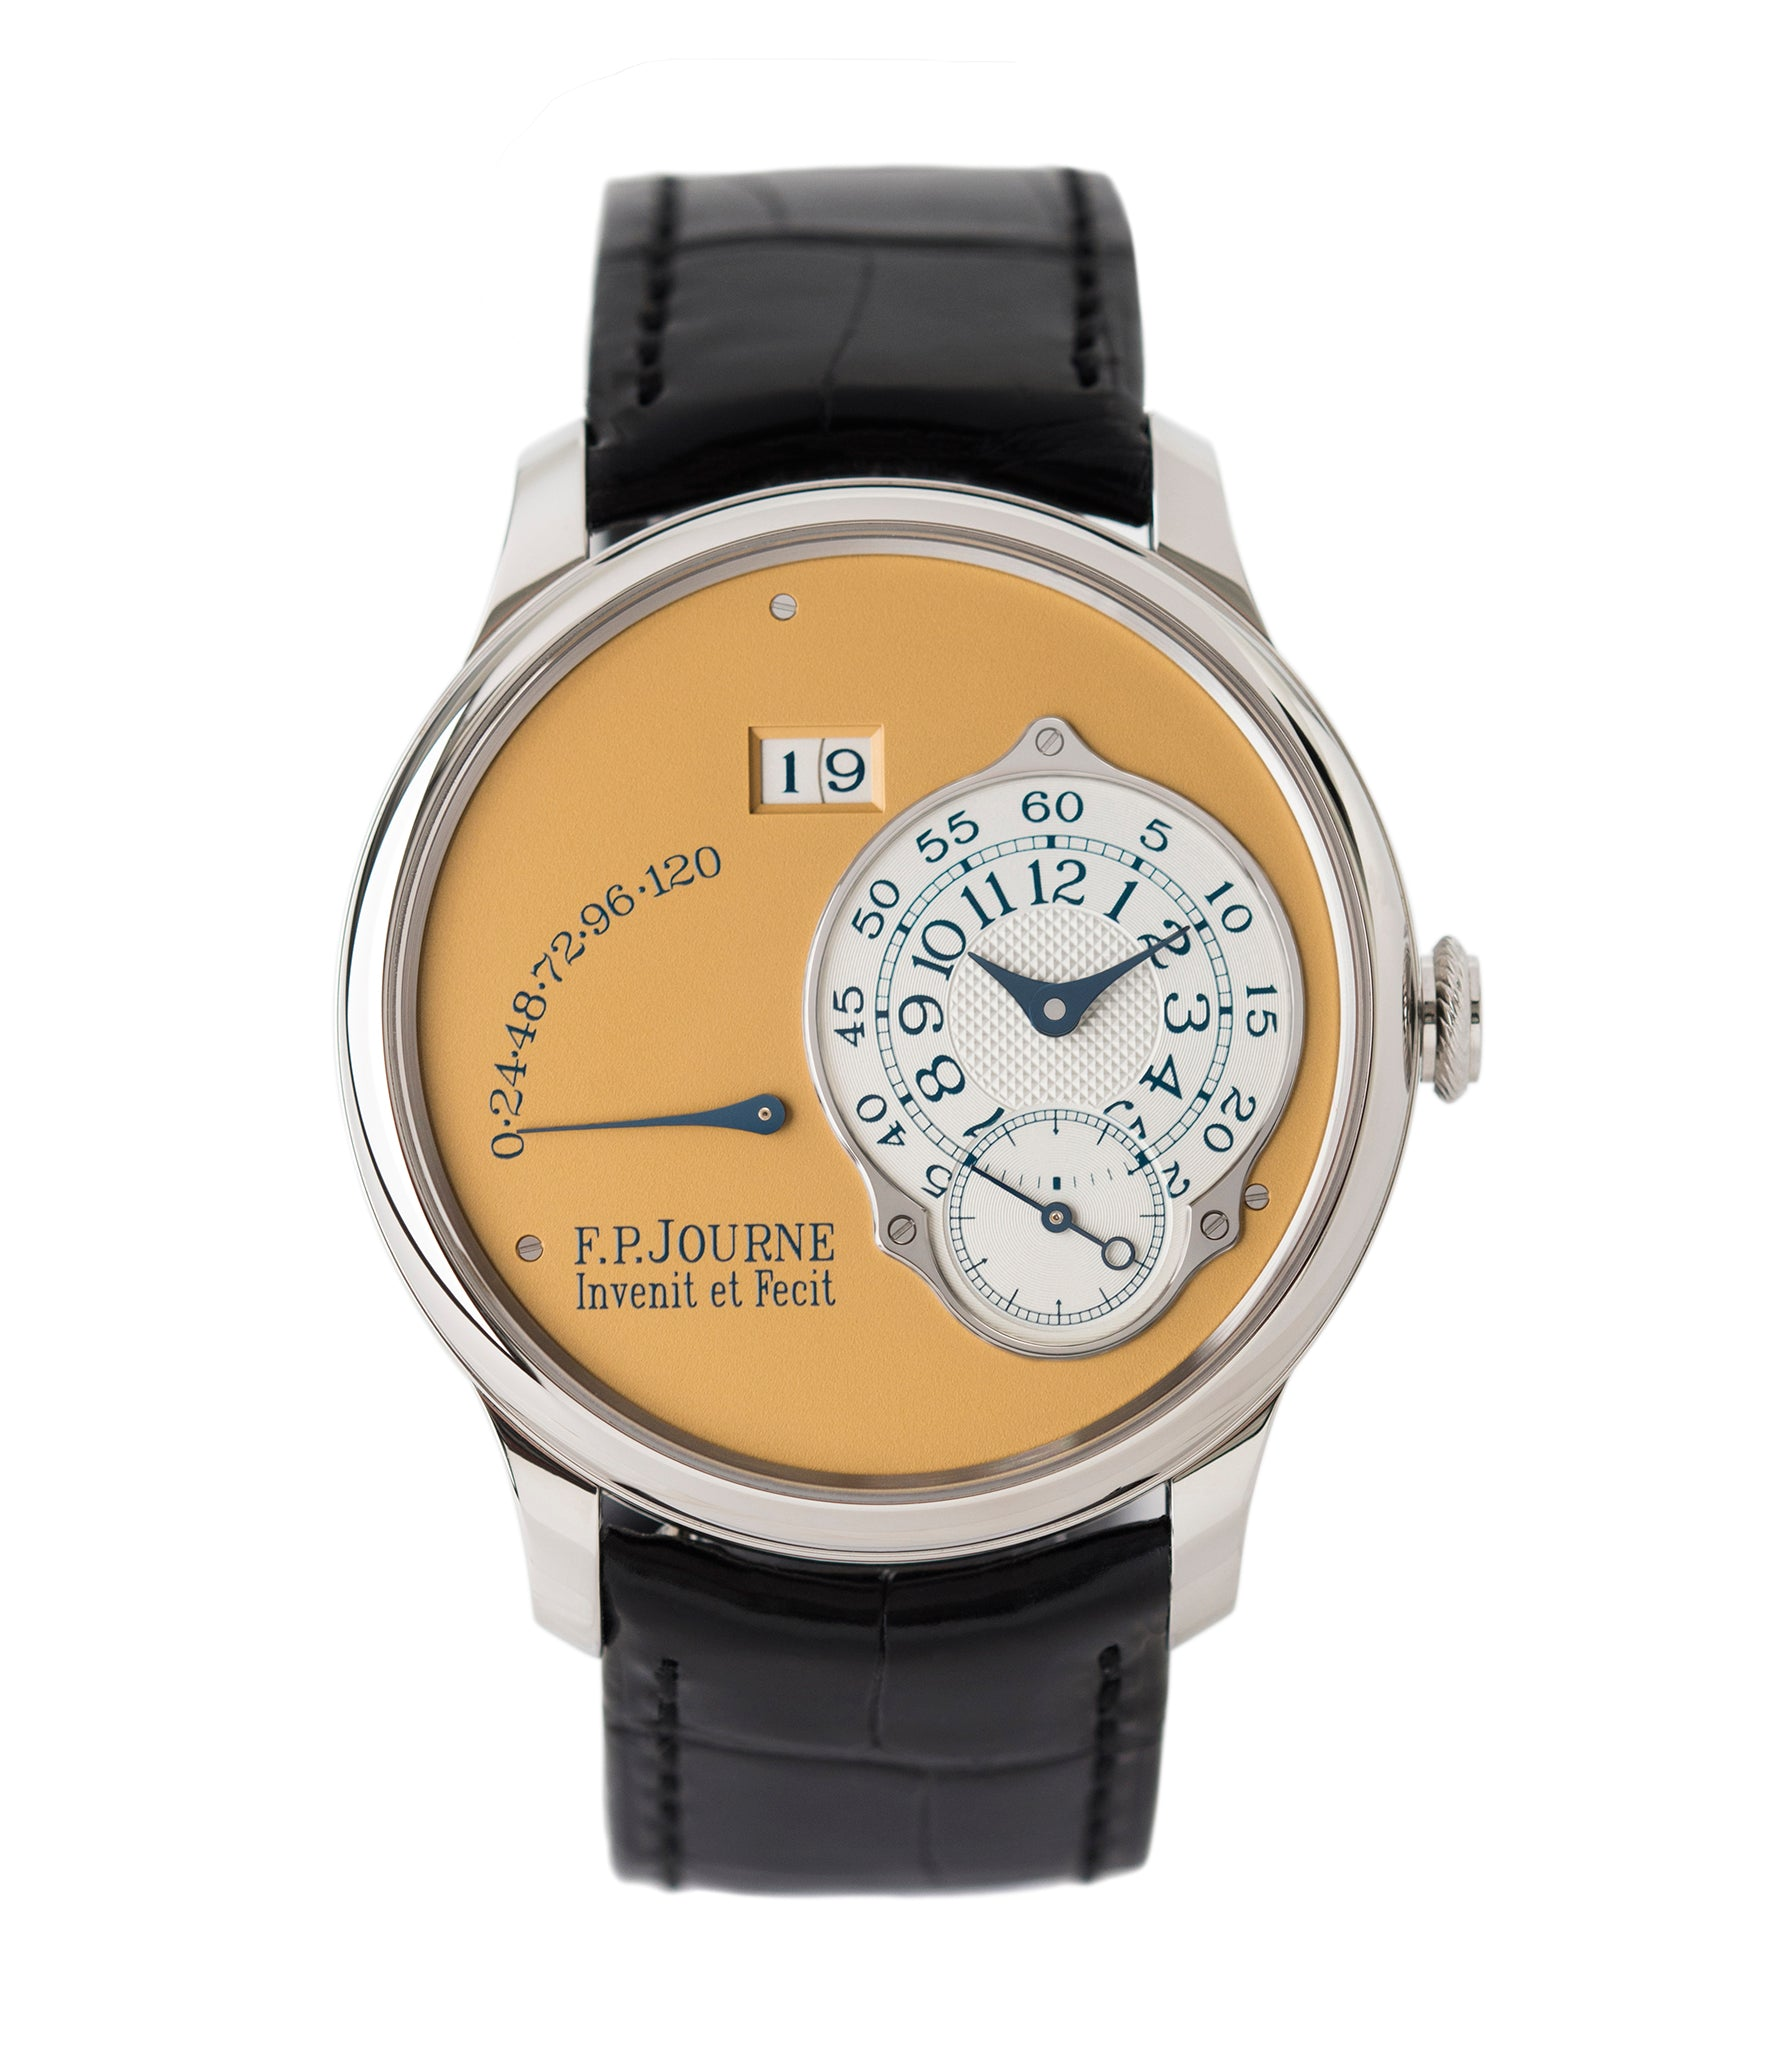 buy F. P. Journe Octa Automatique 38 mm steel limited edition dress watch for sale online at A Collected Man London UK approved seller of independent watchmakers